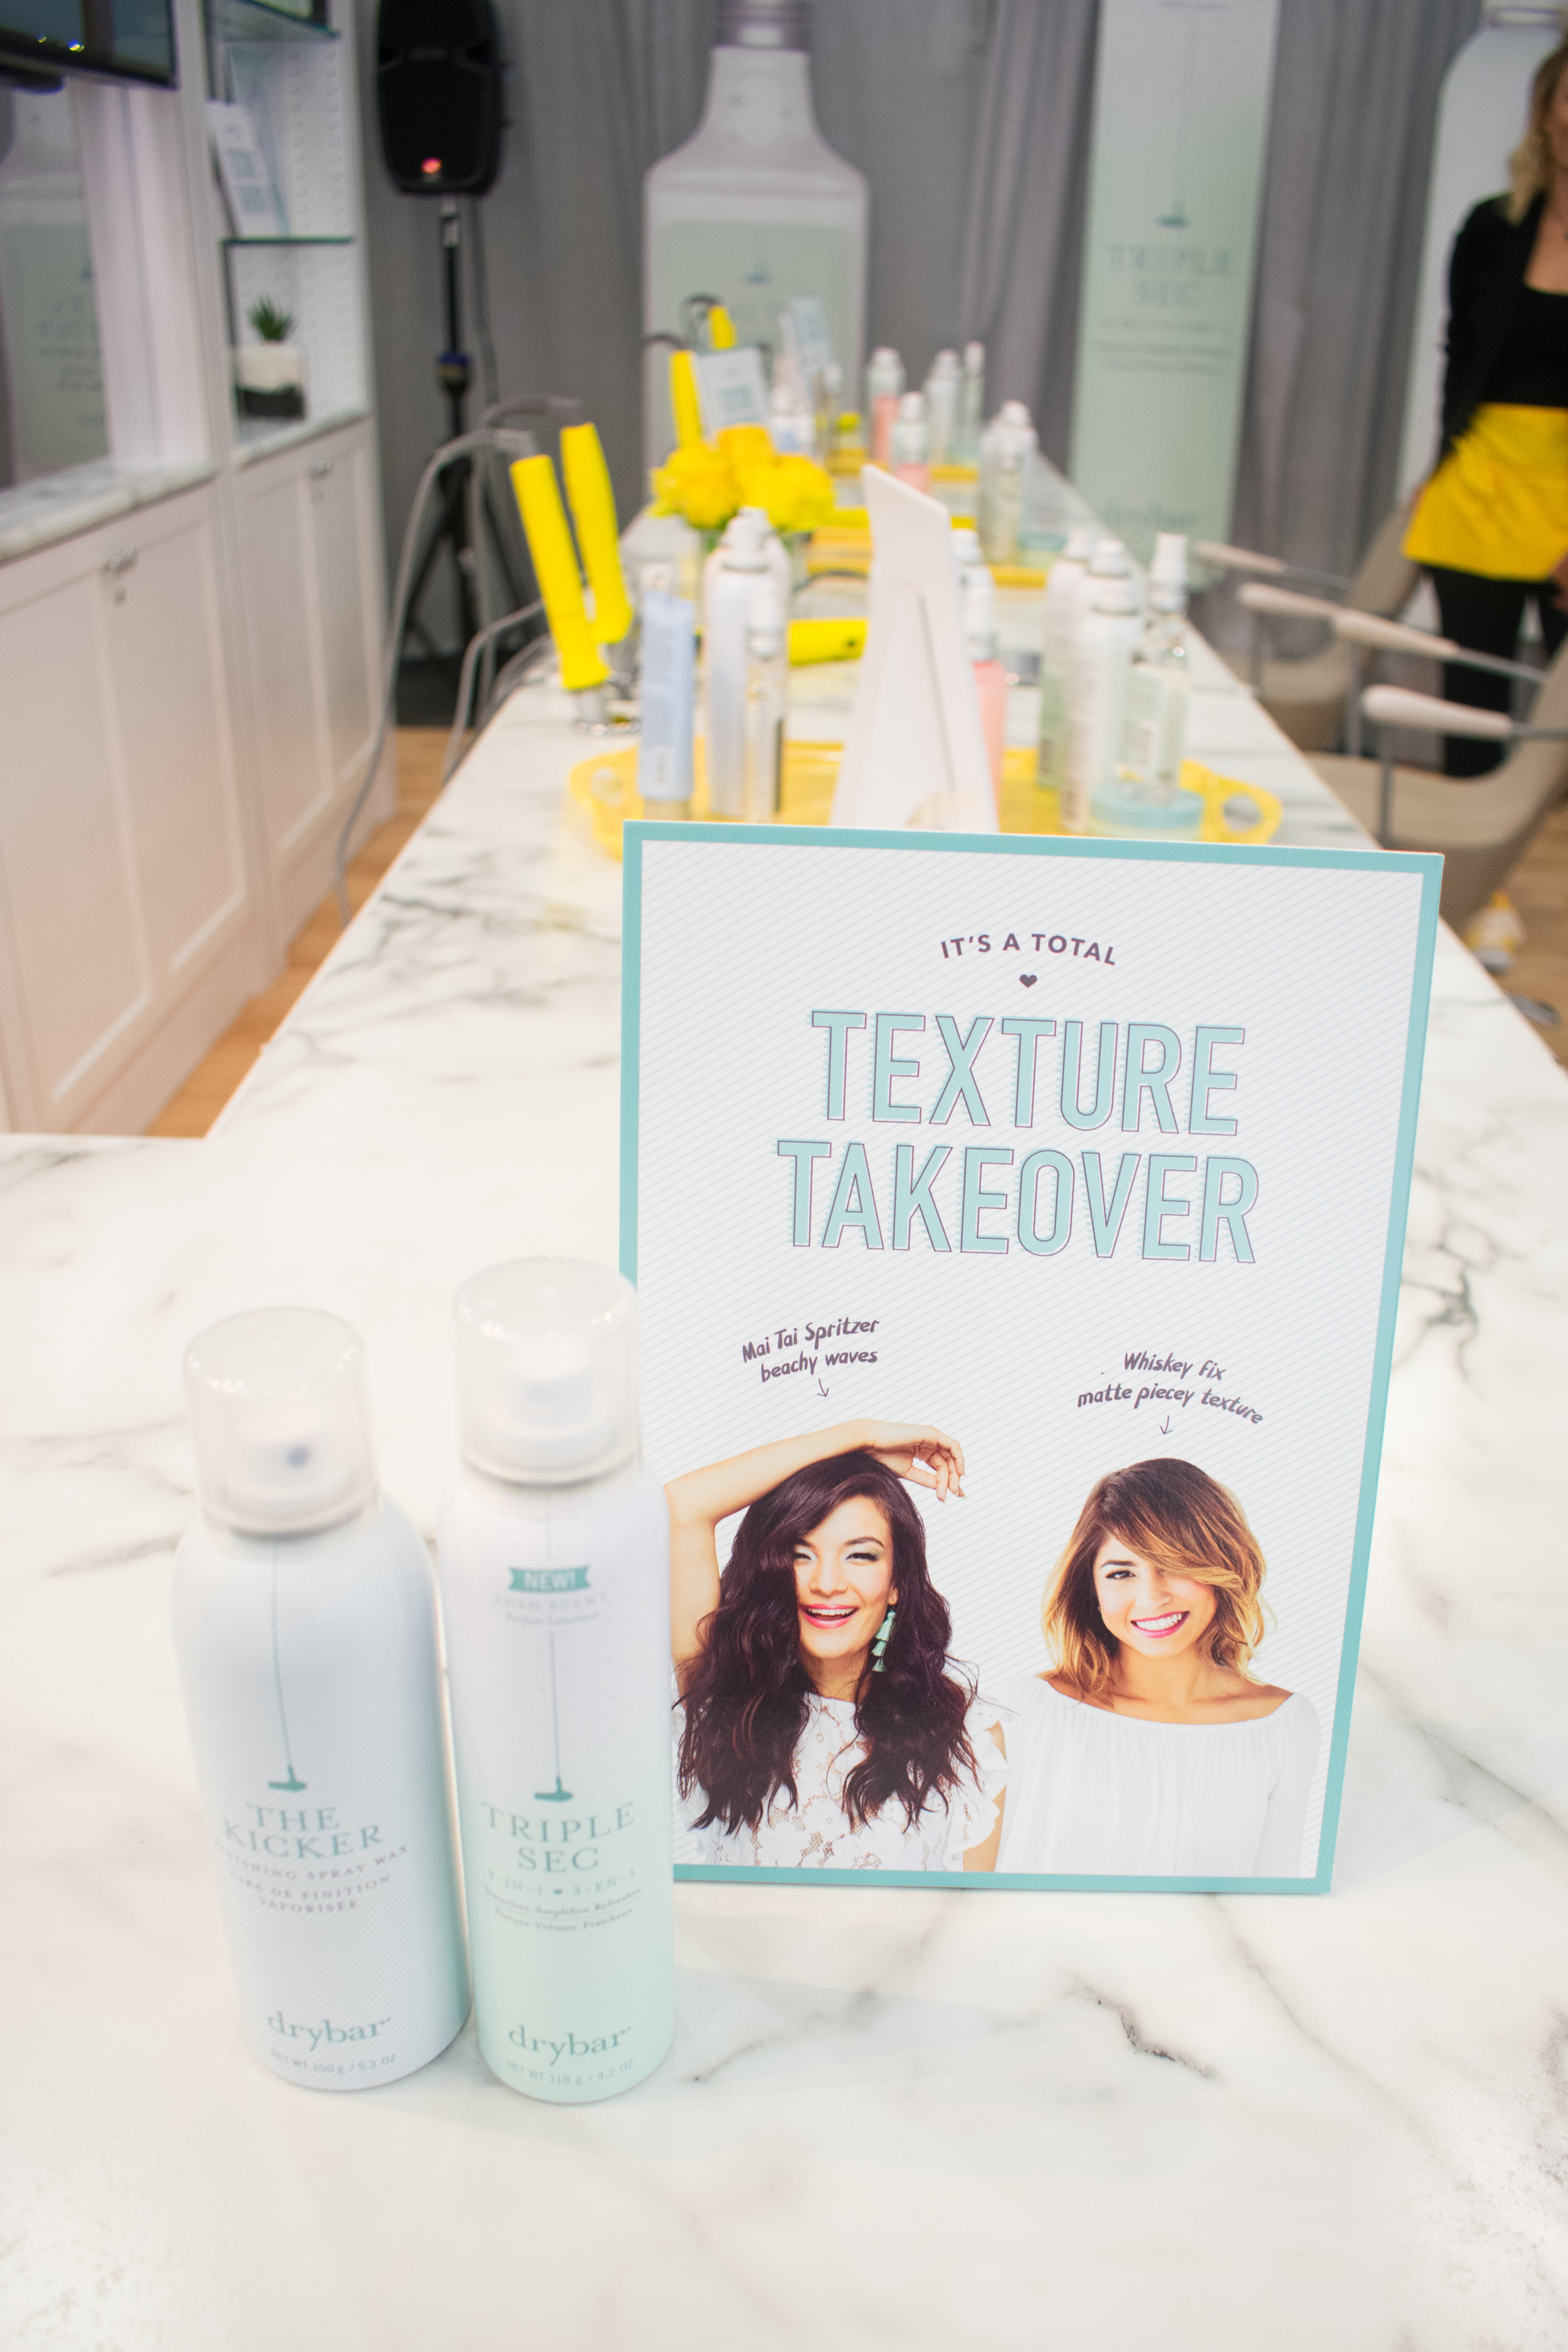 Make Your Life Sweeter Events- Drybar Ulta Convention